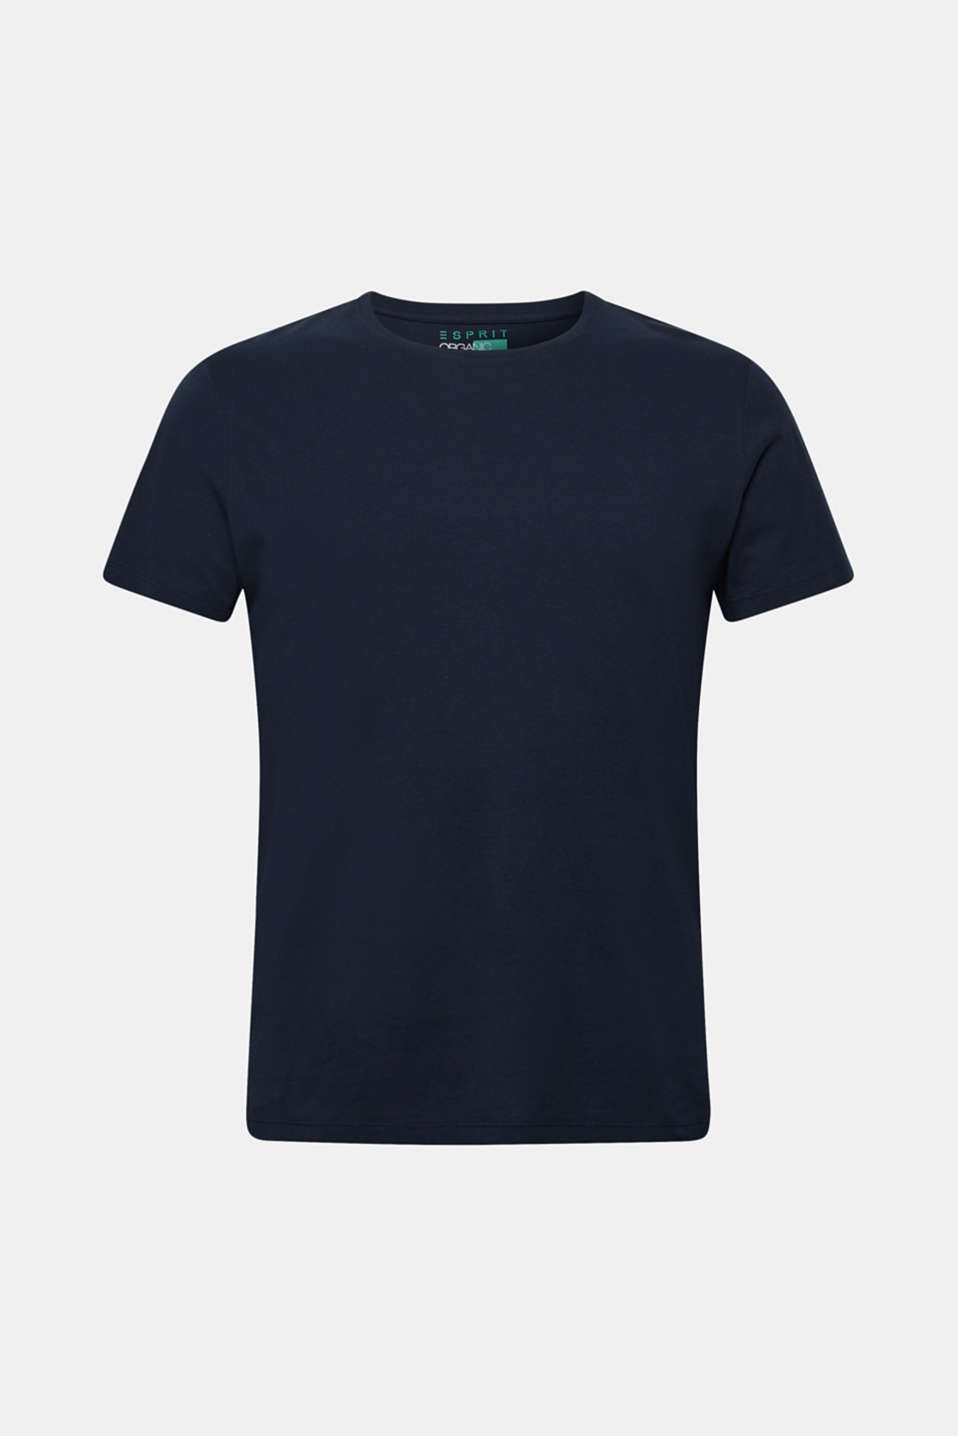 Round neck T-shirt made of pure organic cotton